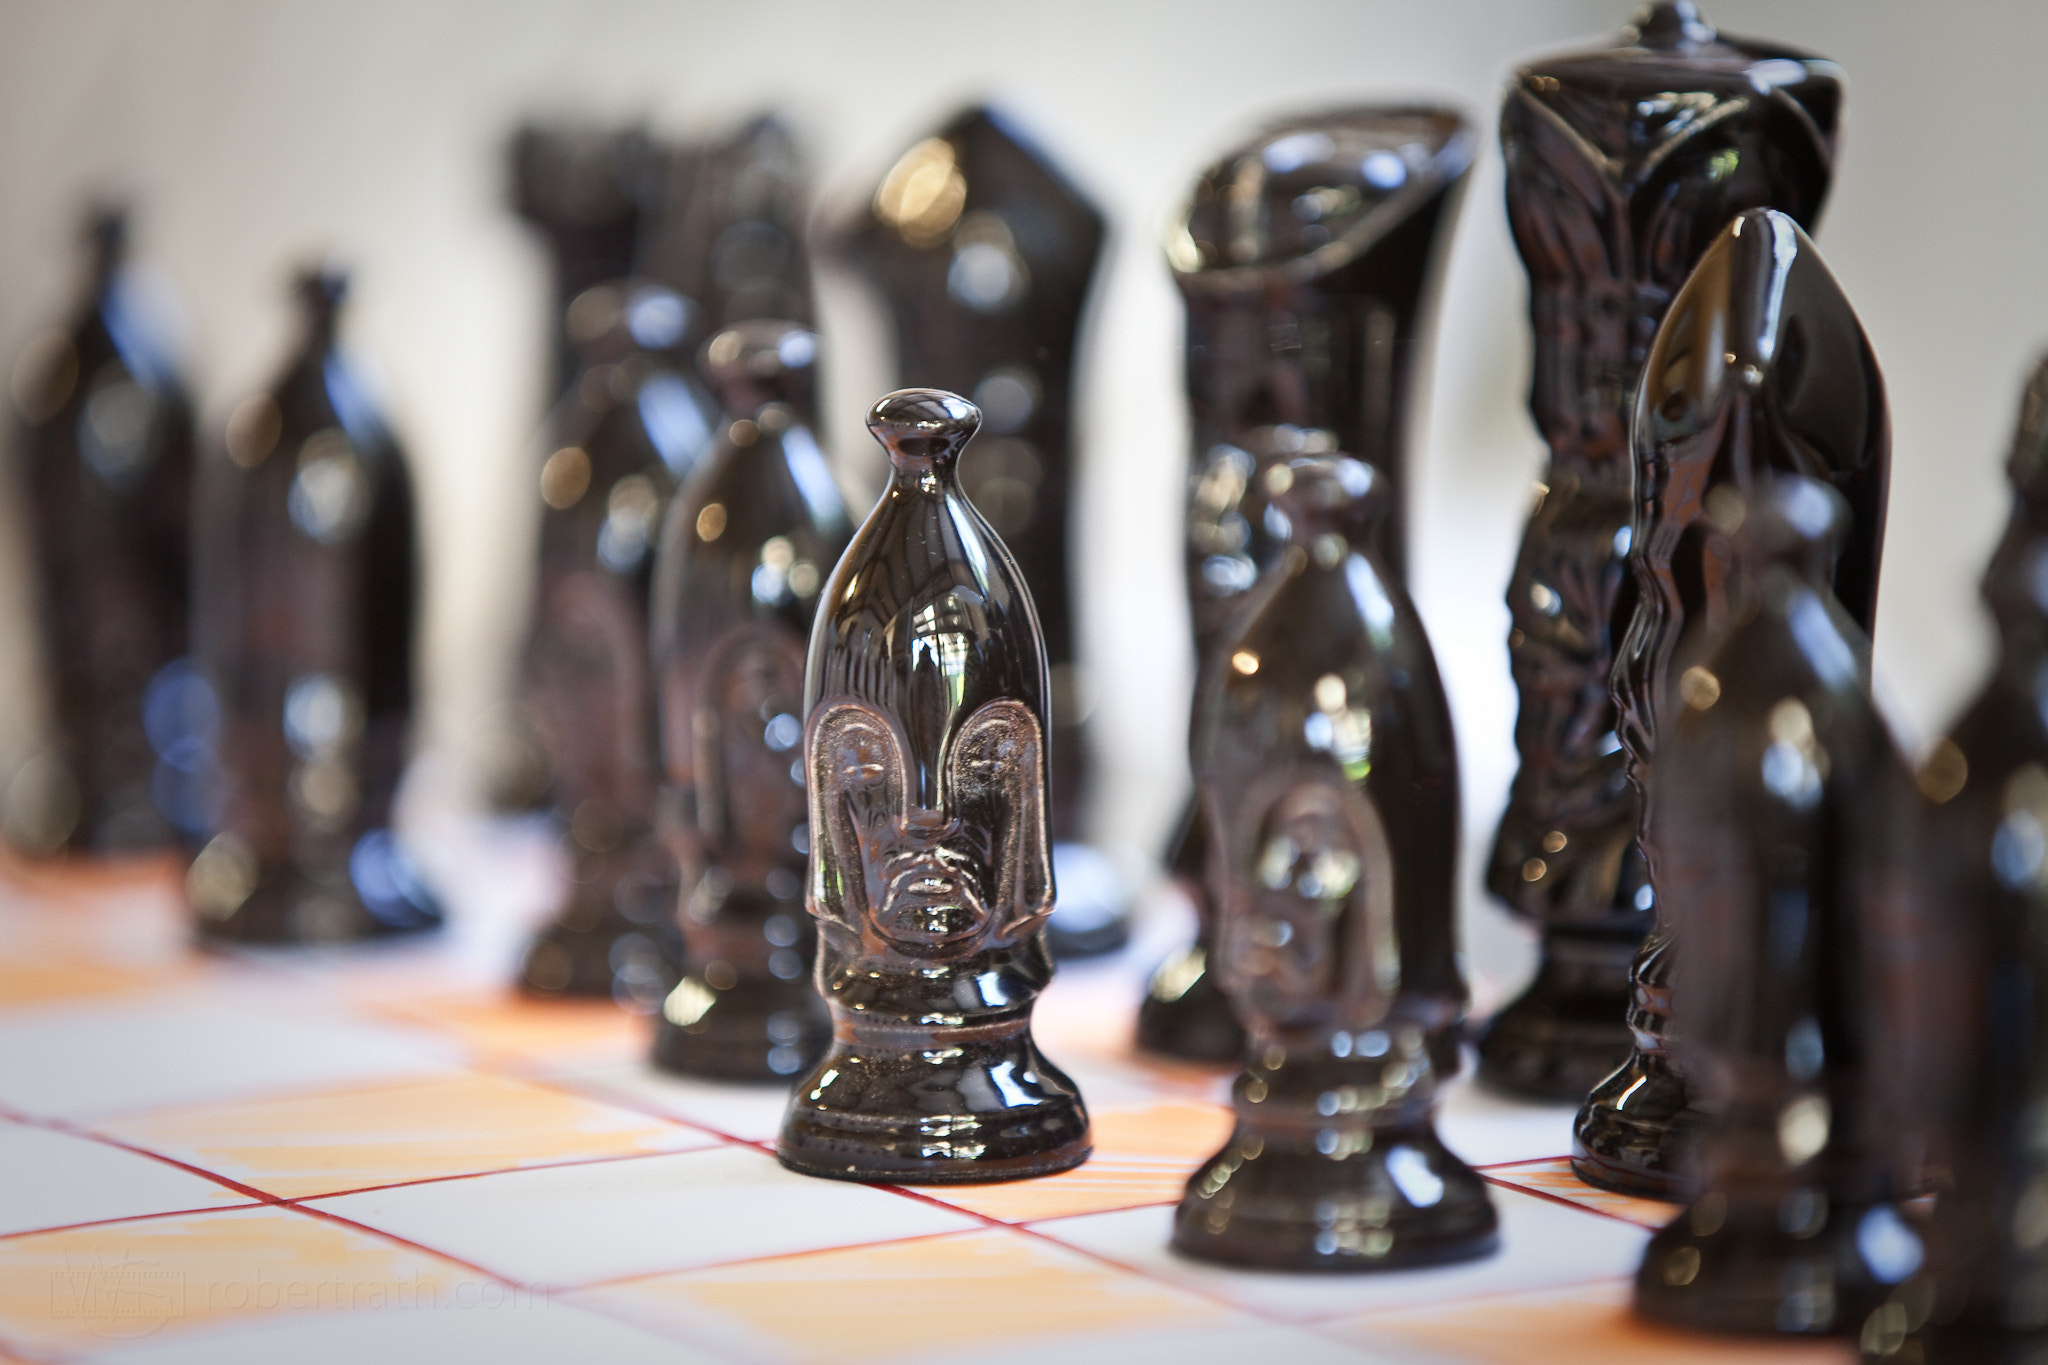 Photograph 366 Days Of 2012, Day 7 - Staring Pawn by Robert Rath on 500px